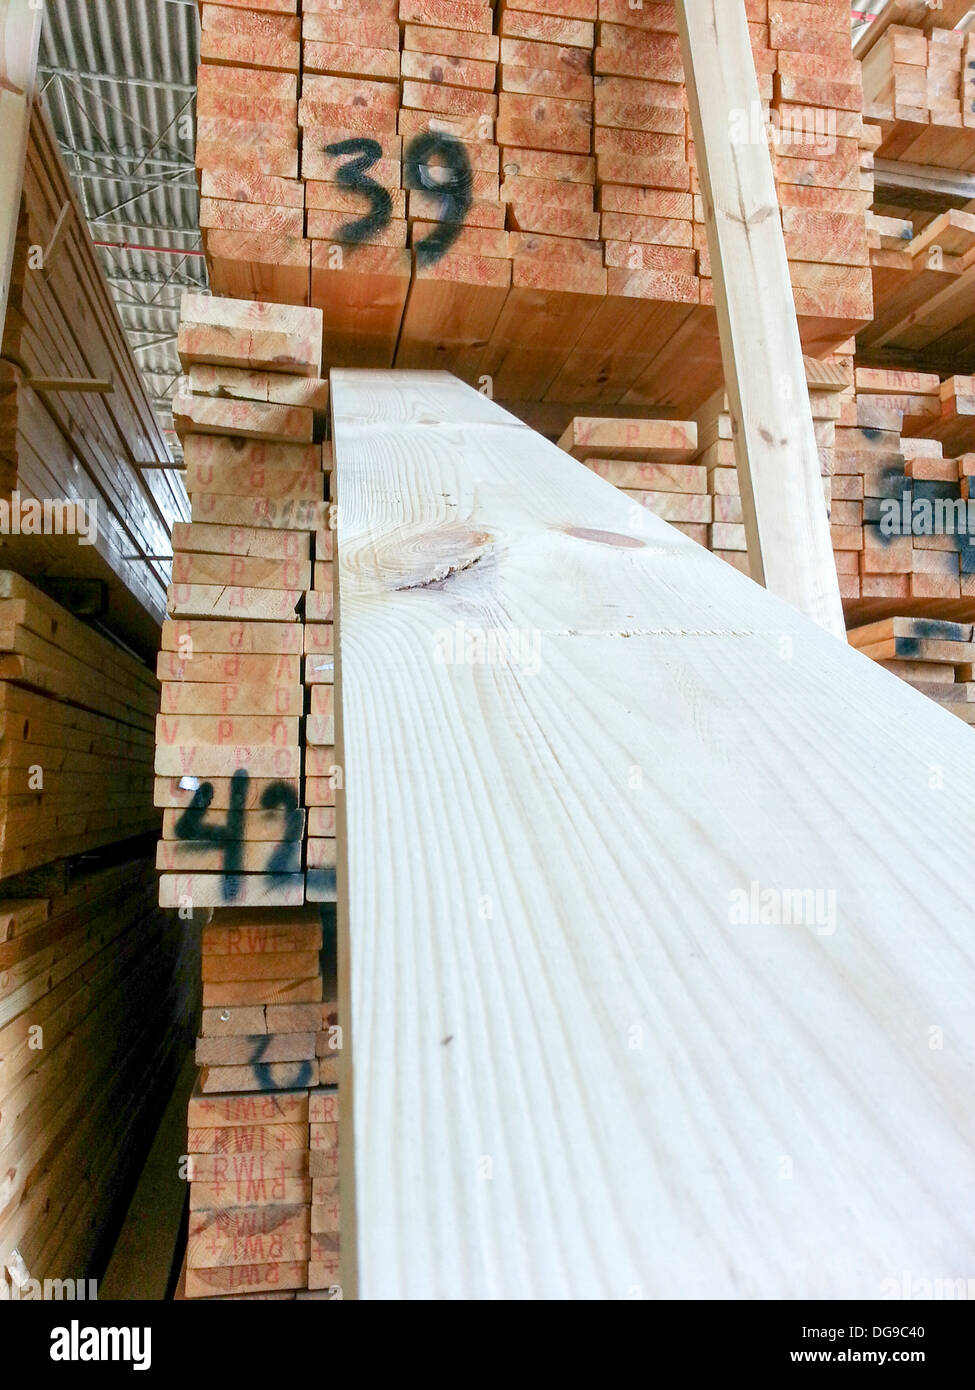 Pine wood planks in a Lumber yard - Stock Image